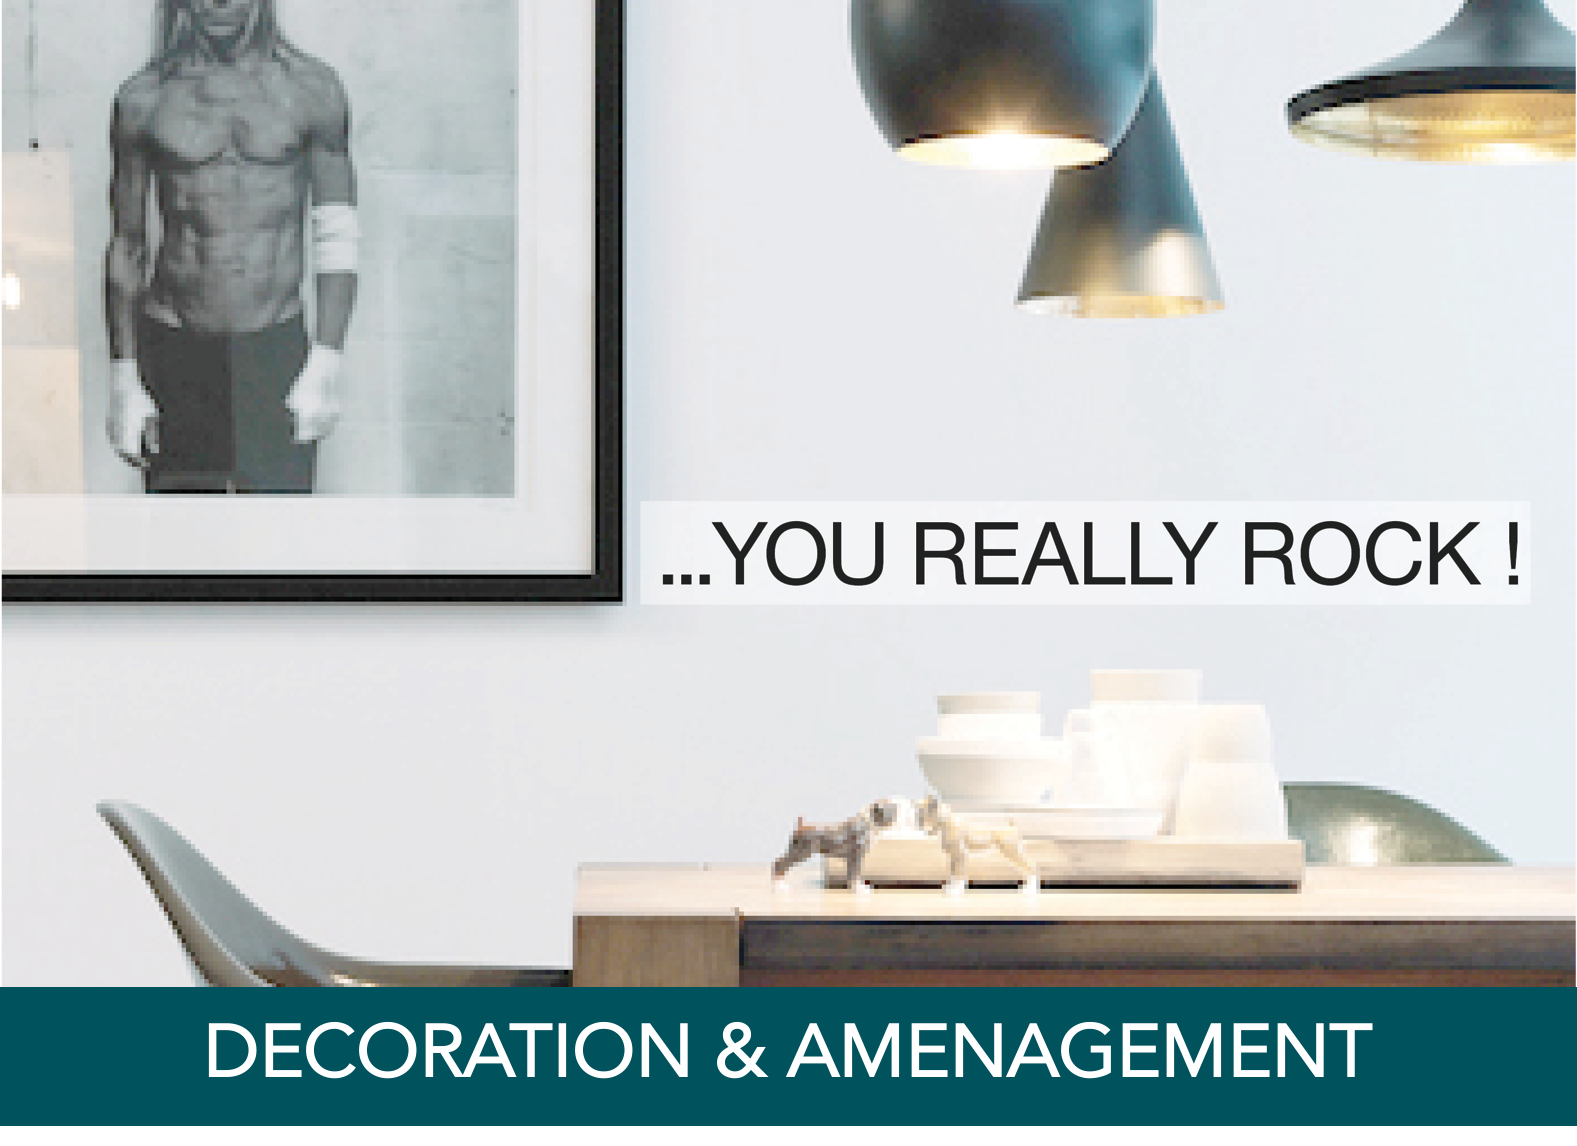 decoration amenagement_Rock the place.png